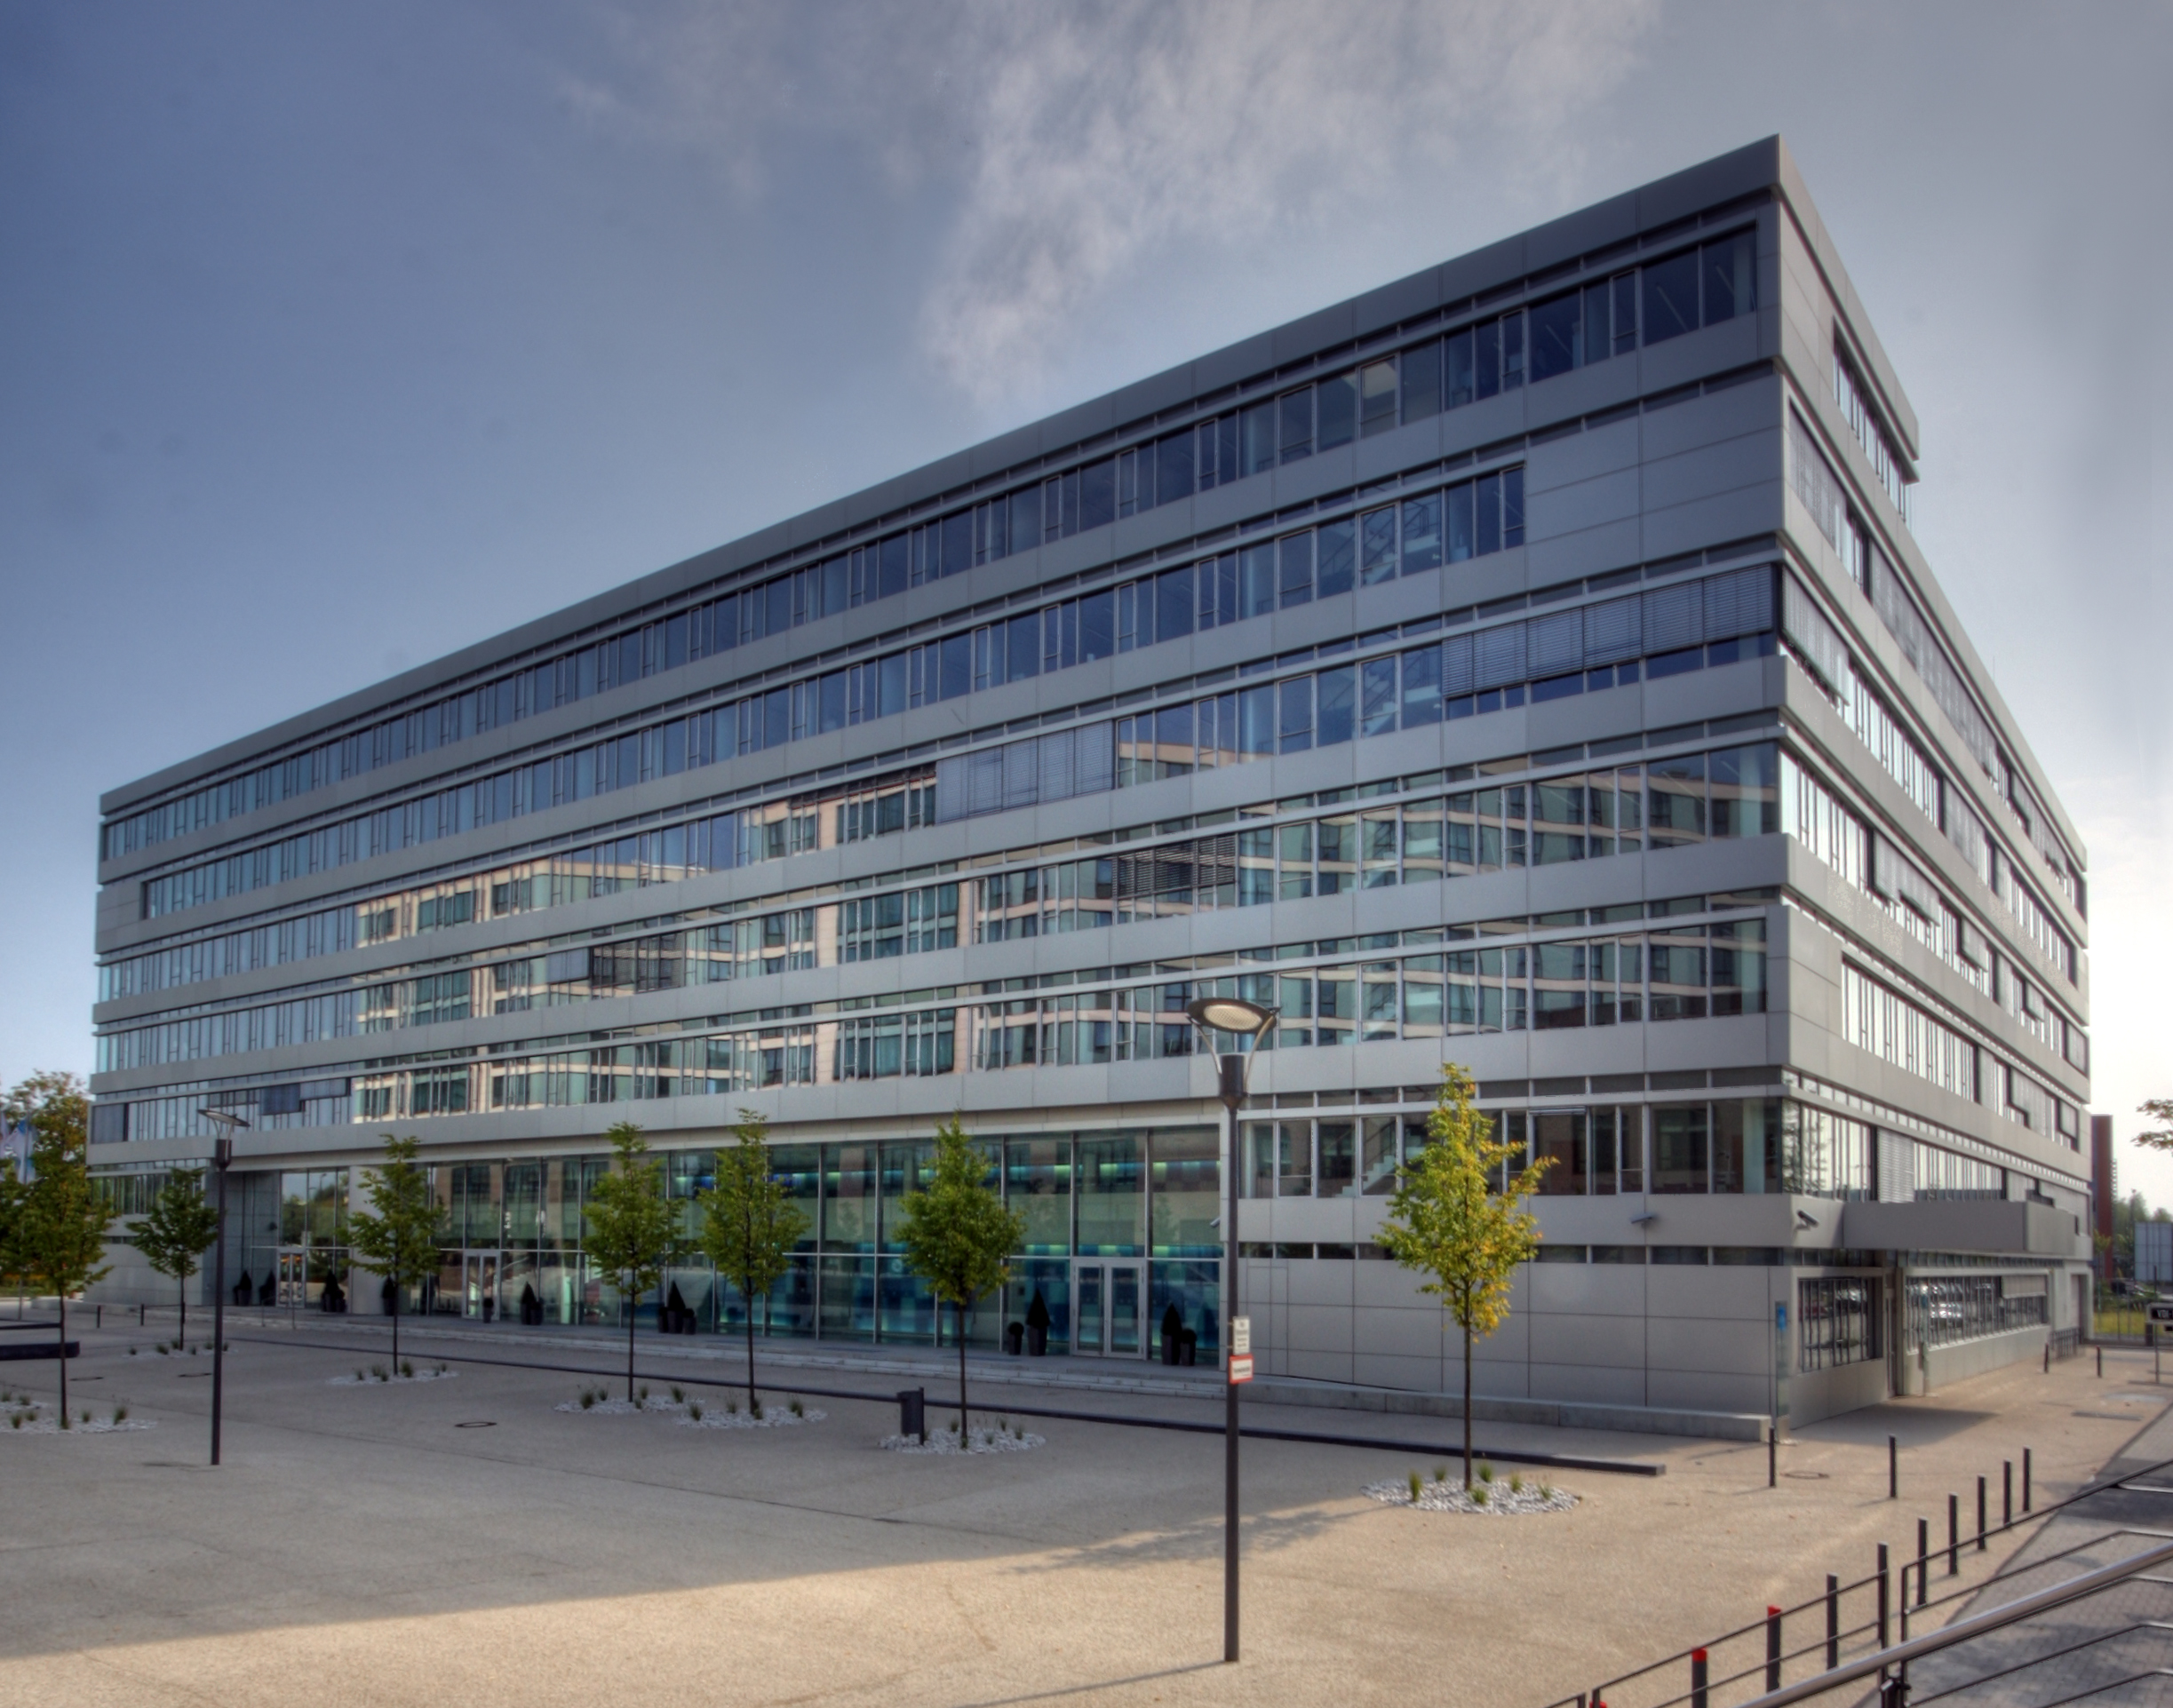 https://upload.wikimedia.org/wikipedia/commons/thumb/d/d3/VDI_Technologiezentrum_D%C3%BCsseldorf_2009-1.jpg/1145px-VDI_Technologiezentrum_D%C3%BCsseldorf_2009-1.jpg